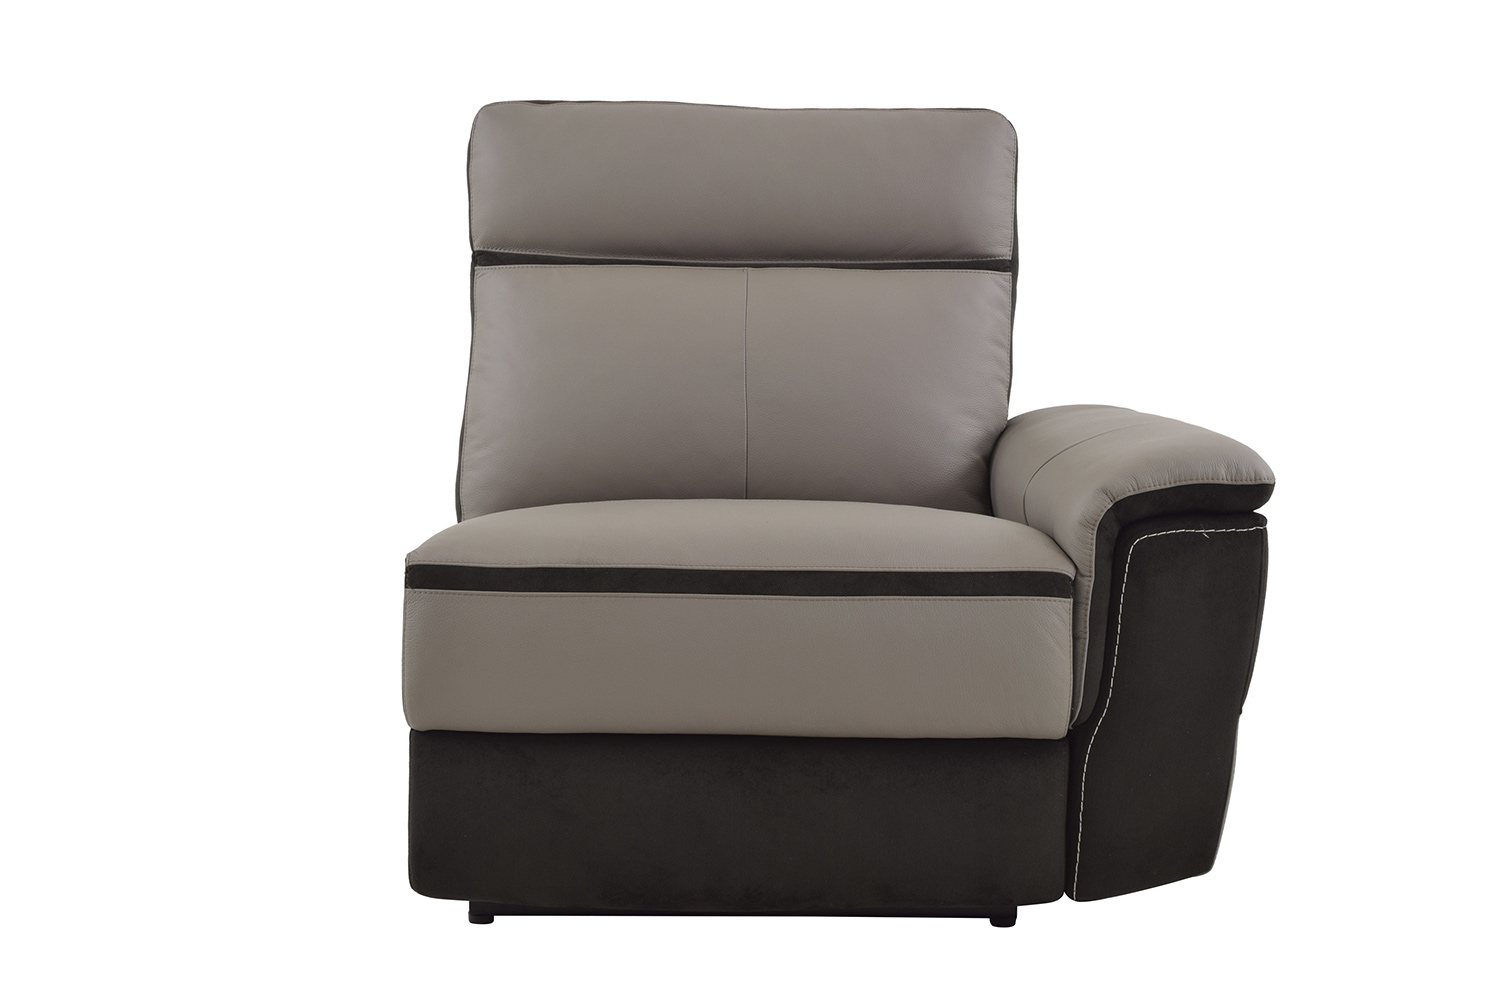 Homelegance Laertes Power Right Side Reclining Chair - Top Grain Leather/Fabric - Taupe Grey